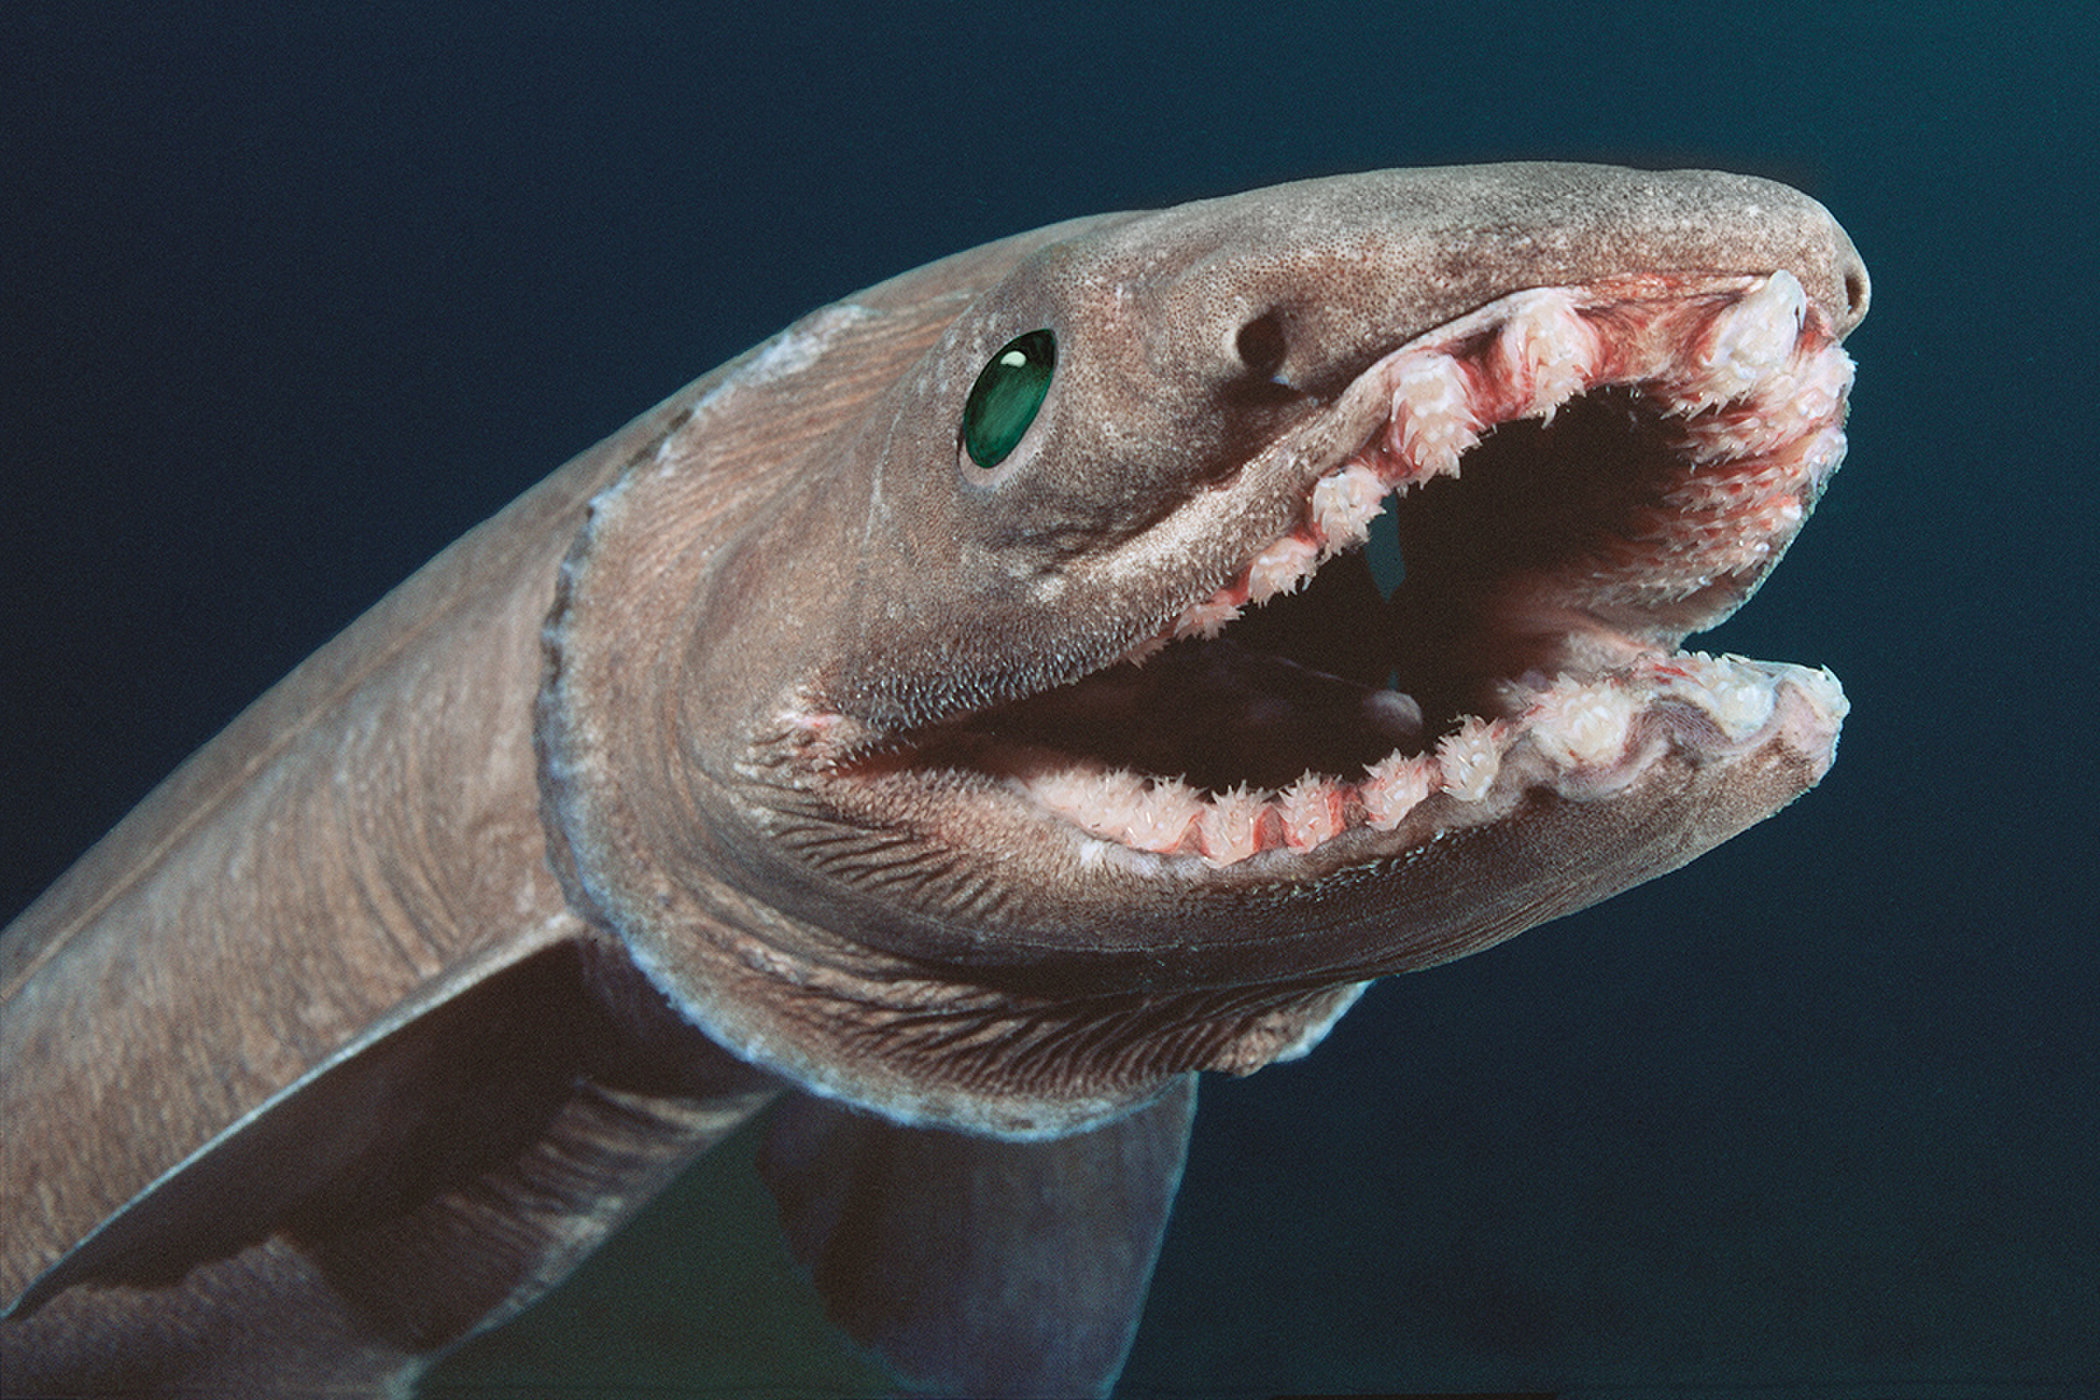 Frilled Shark Teeth - General Fossil Discussion - The Fossil Forum